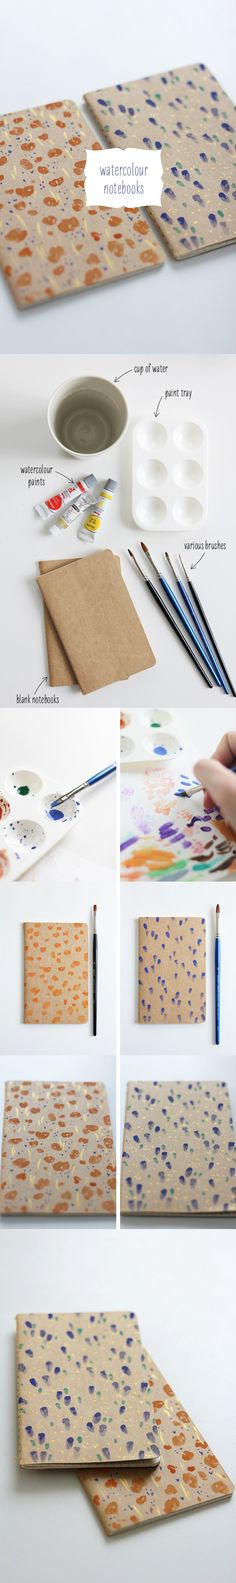 DIY Watercolour on notebooks